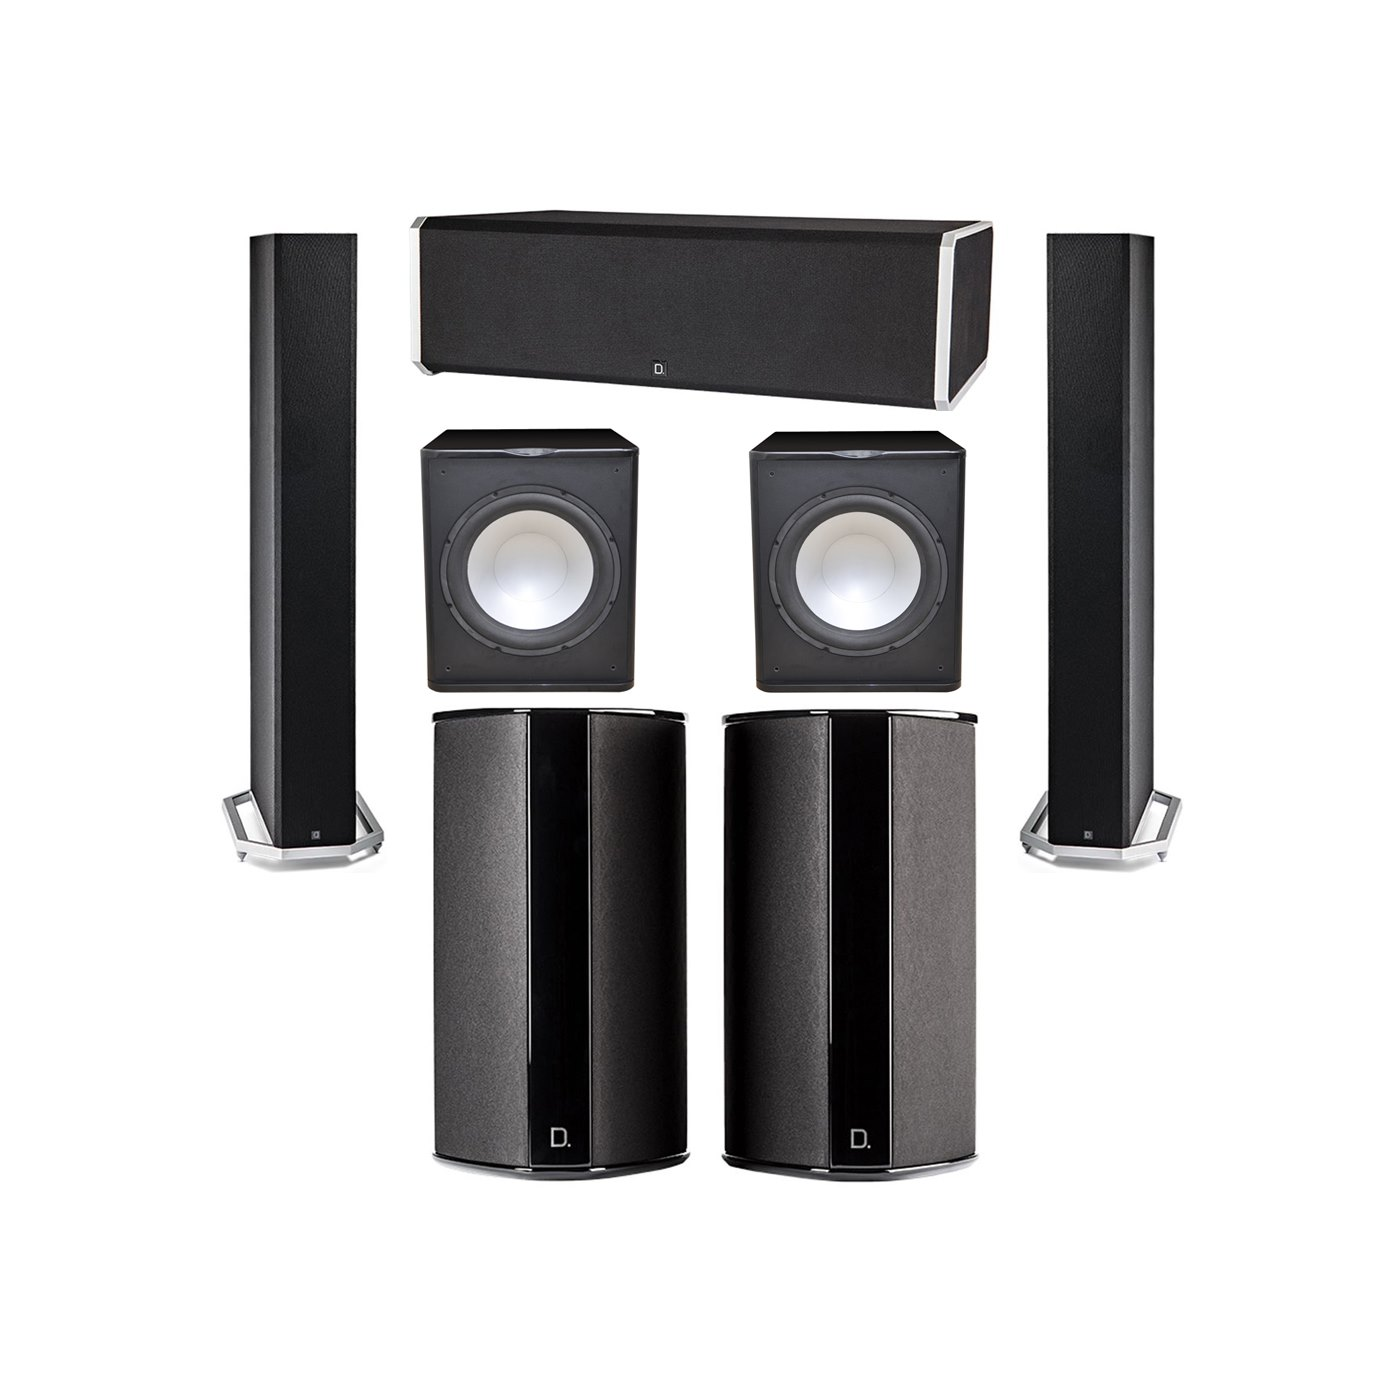 Definitive Technology 5.2 System with 2 BP9060 Tower Speakers, 1 CS9080 Center Channel Speaker, 2 SR9080 Surround Speaker, 2 Premier Acoustic PA-150 Subwoofer